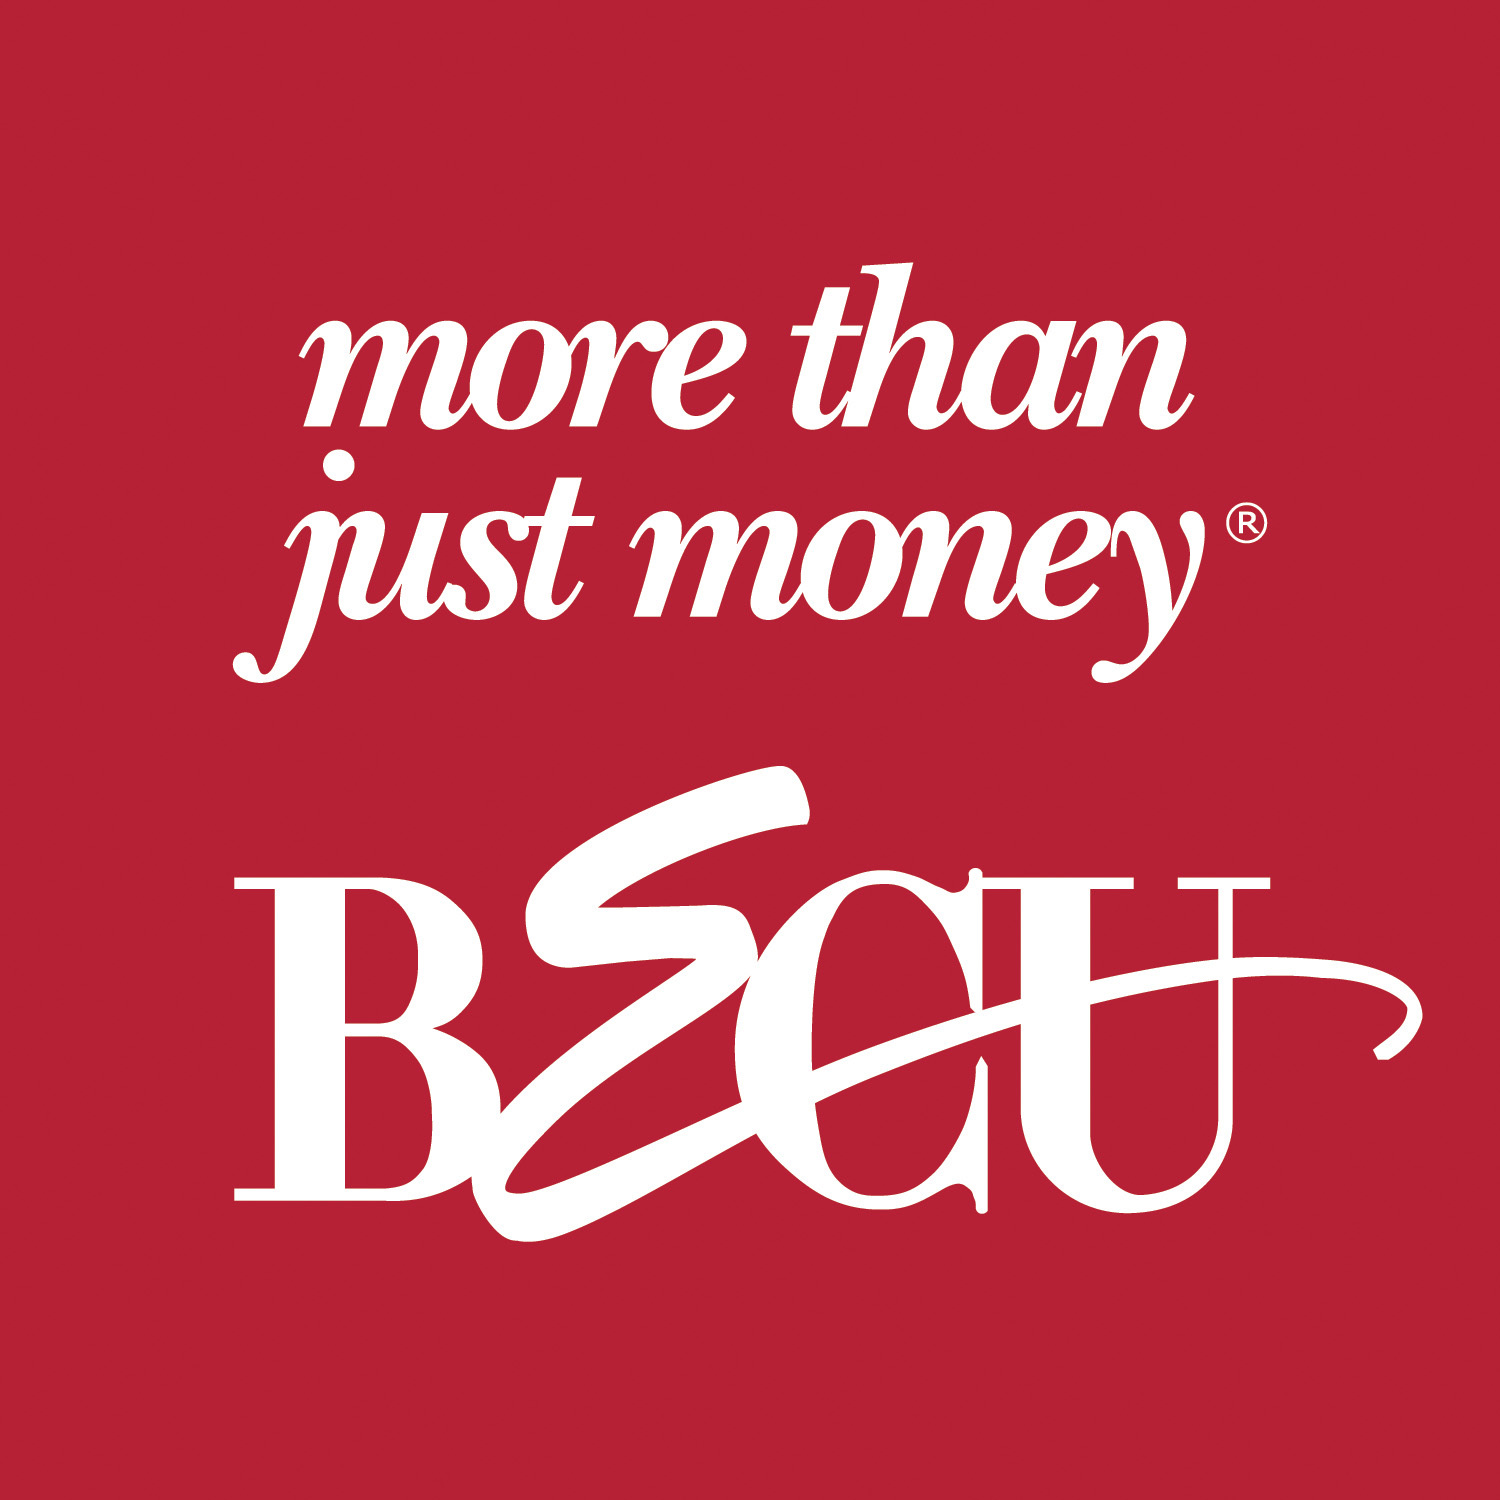 BECU more than just money